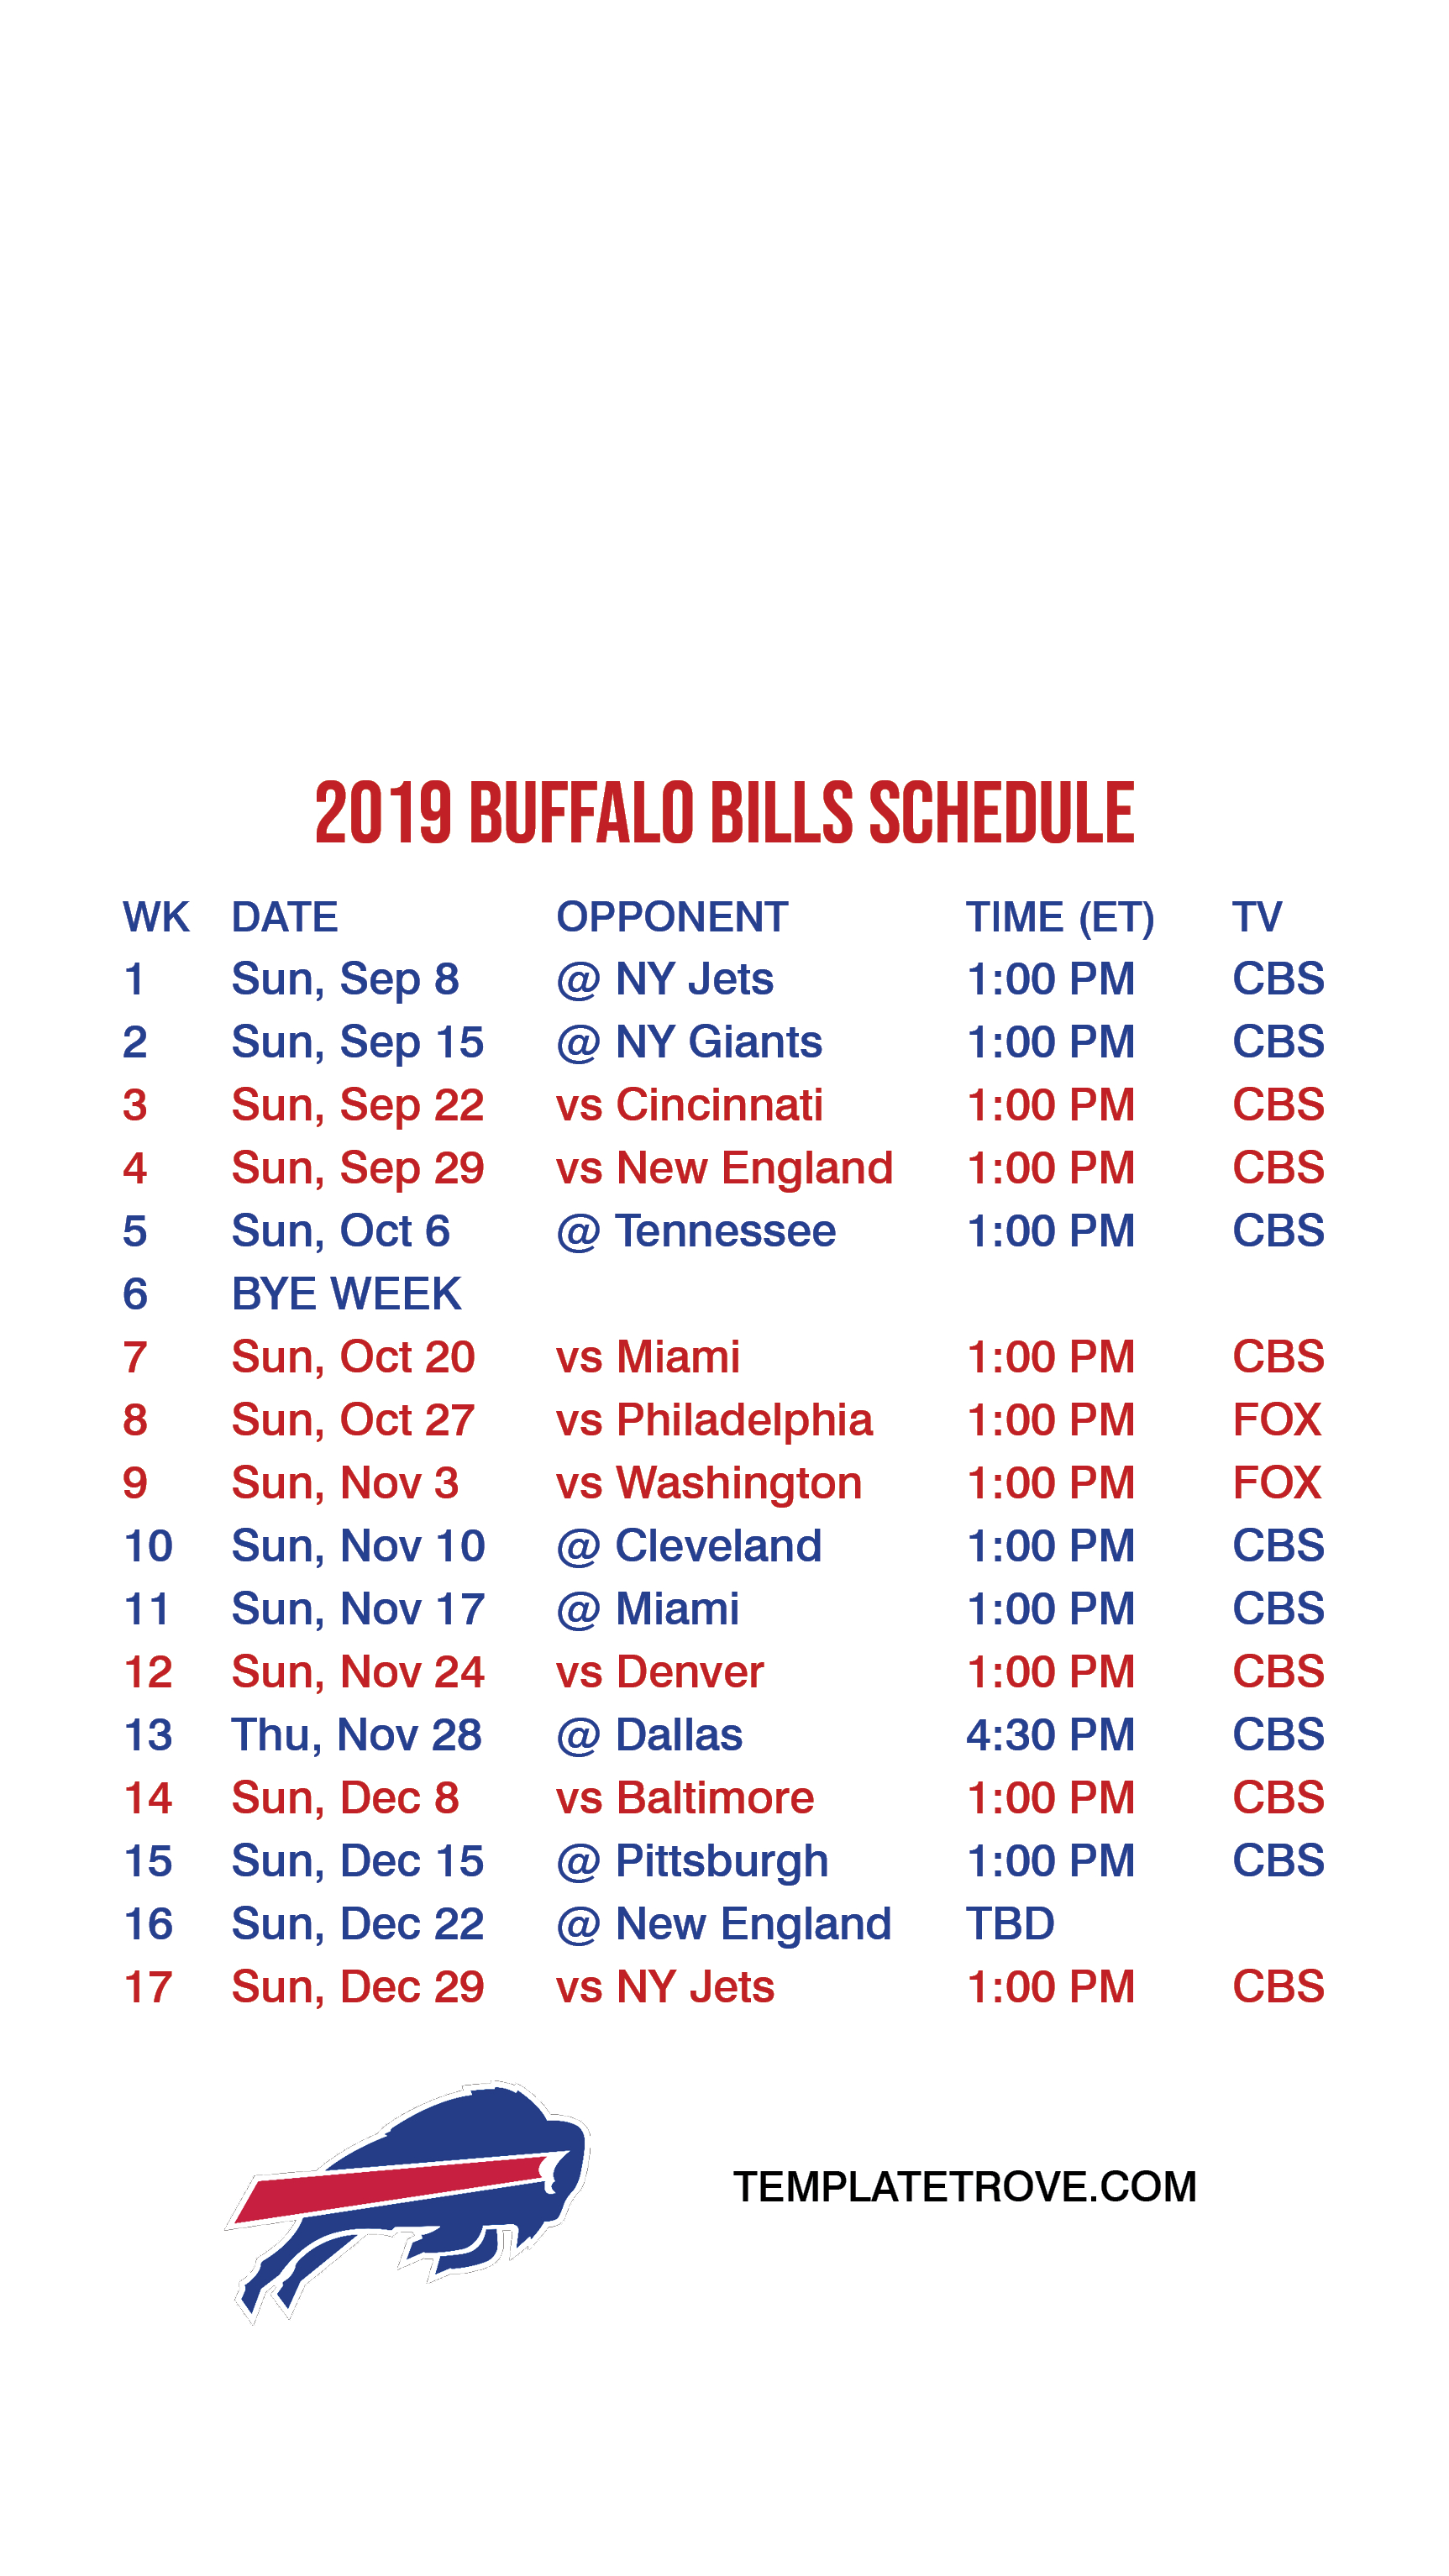 2019-2020 Buffalo Bills Lock Screen Schedule For Iphone 6-7